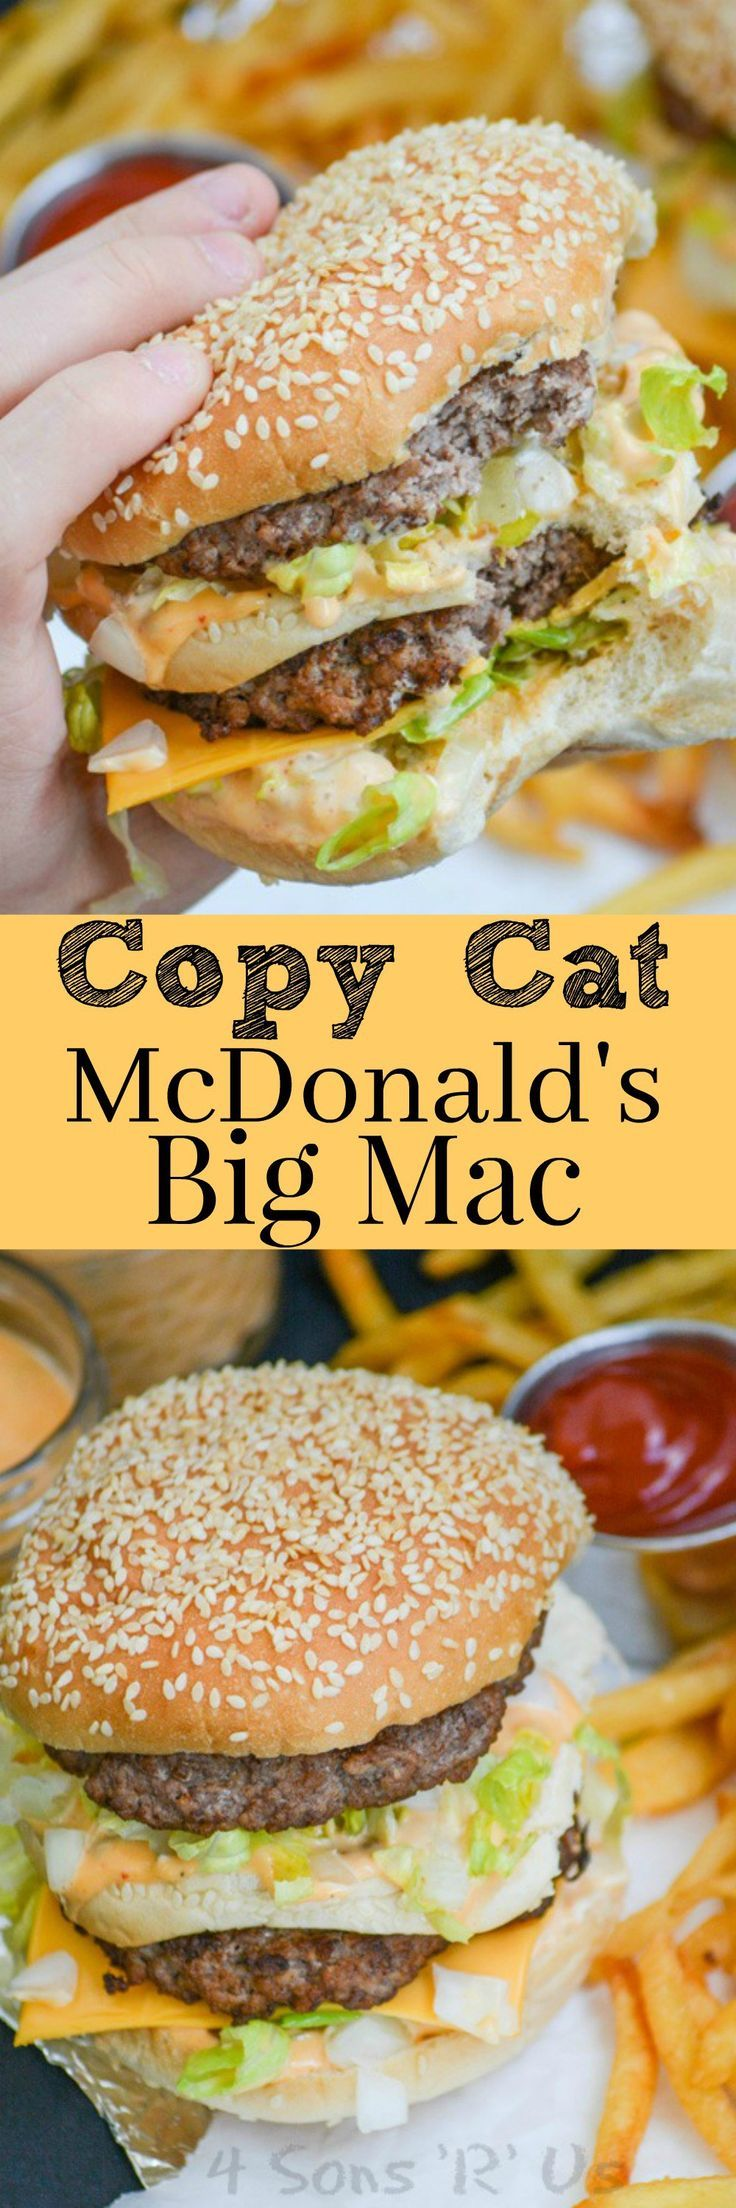 **Might try a vegetarian version with Bocca burgers this weekend...** Get an authentic taste of your favorite fast food burger with this Copy Cat McDonald's Big Mac. It's got everything you crave about the classic double decker sandwich, including the 'secret sauce', that's a spot on replica. Serve it with an ice cold coke, and crispy french fries for an authentic lunch or dinner.